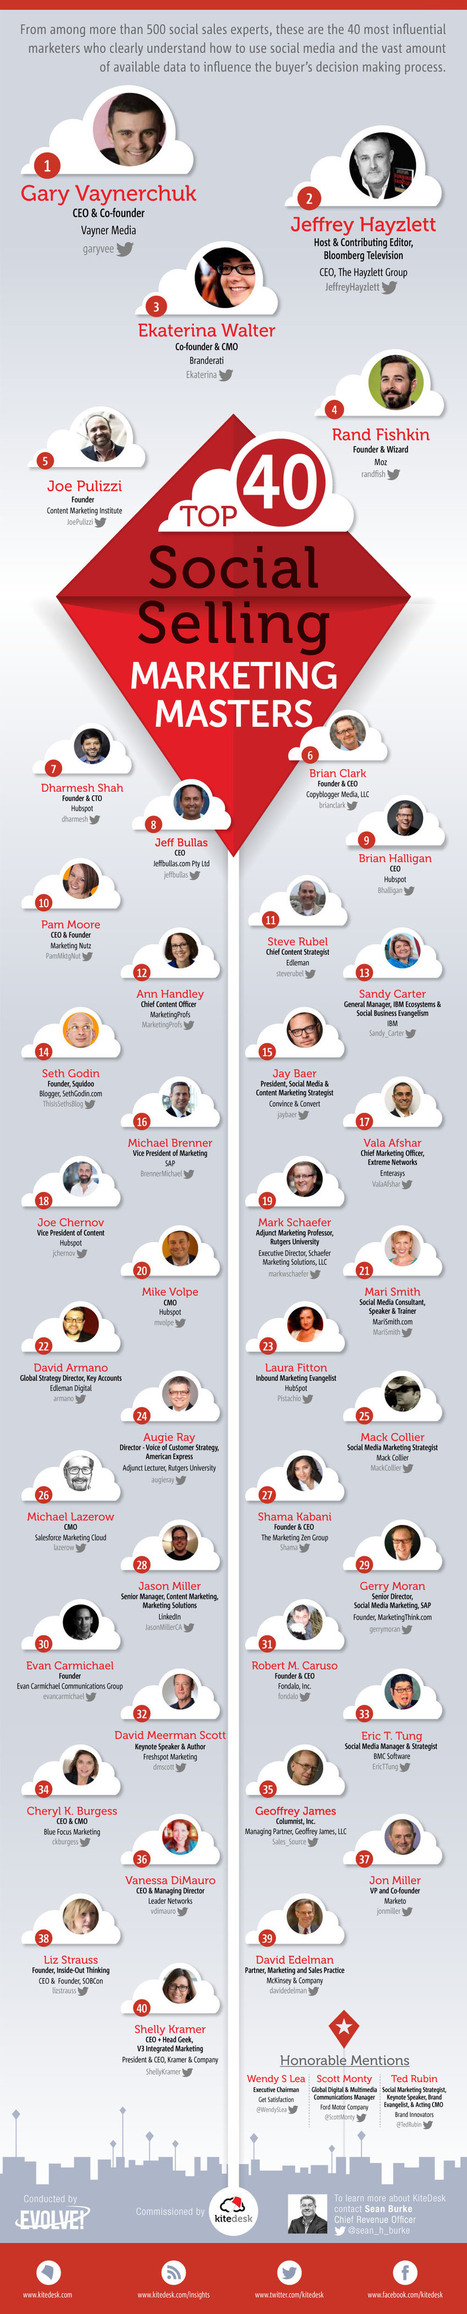 Recognizing The World's Top 40 Social Marketing Talent | Social Media | Scoop.it